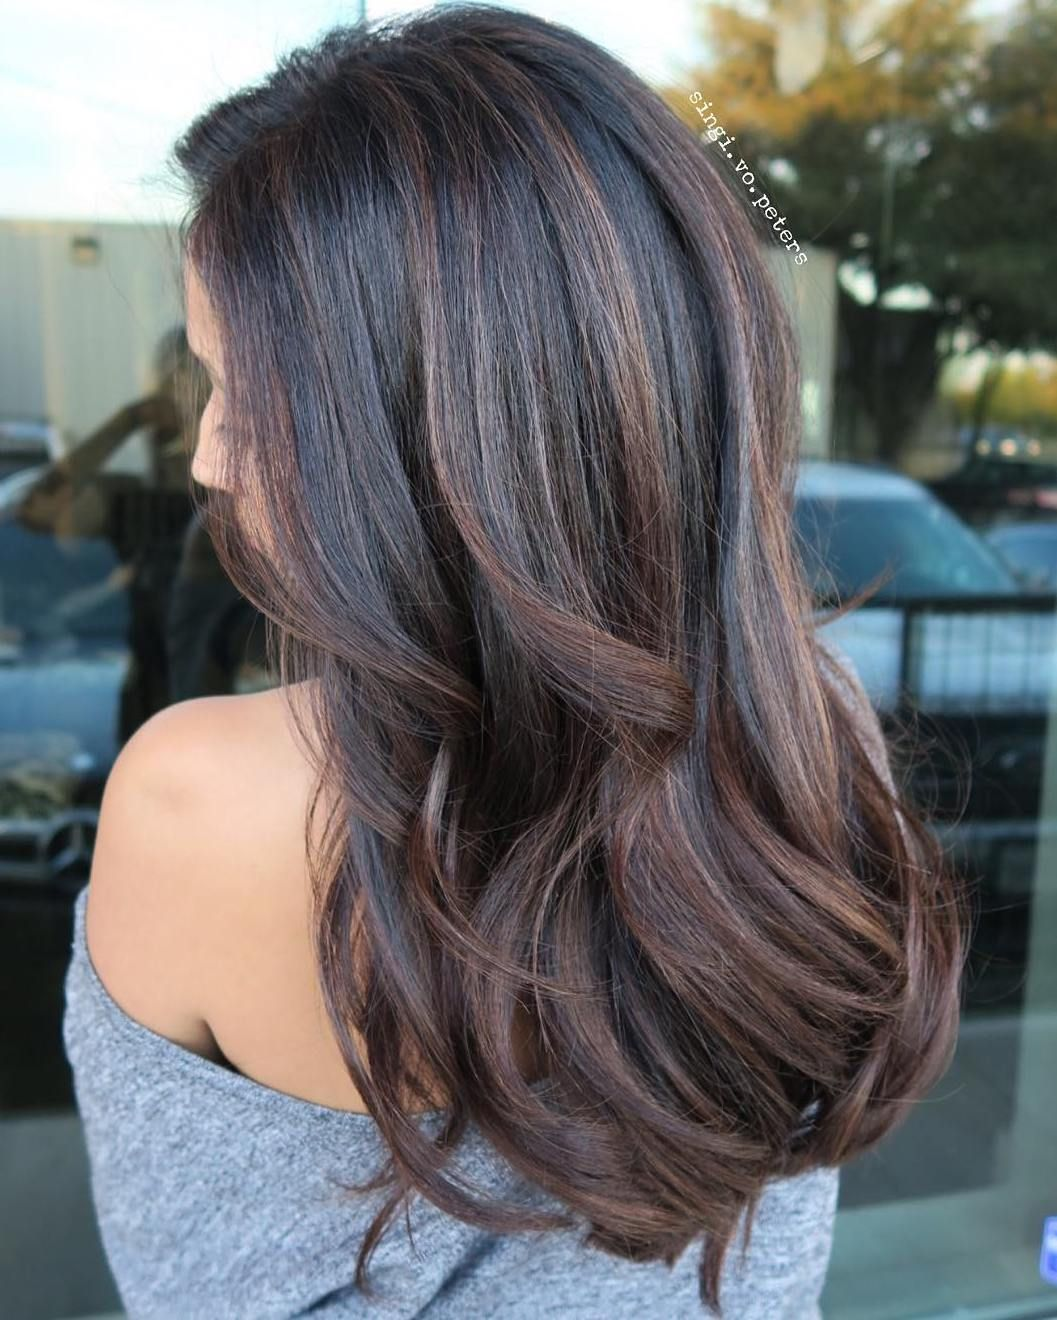 70 Flattering Balayage Hair Color Ideas For 2020 Hair Color For Black Hair Balayage Hair Fall Hair Color For Brunettes